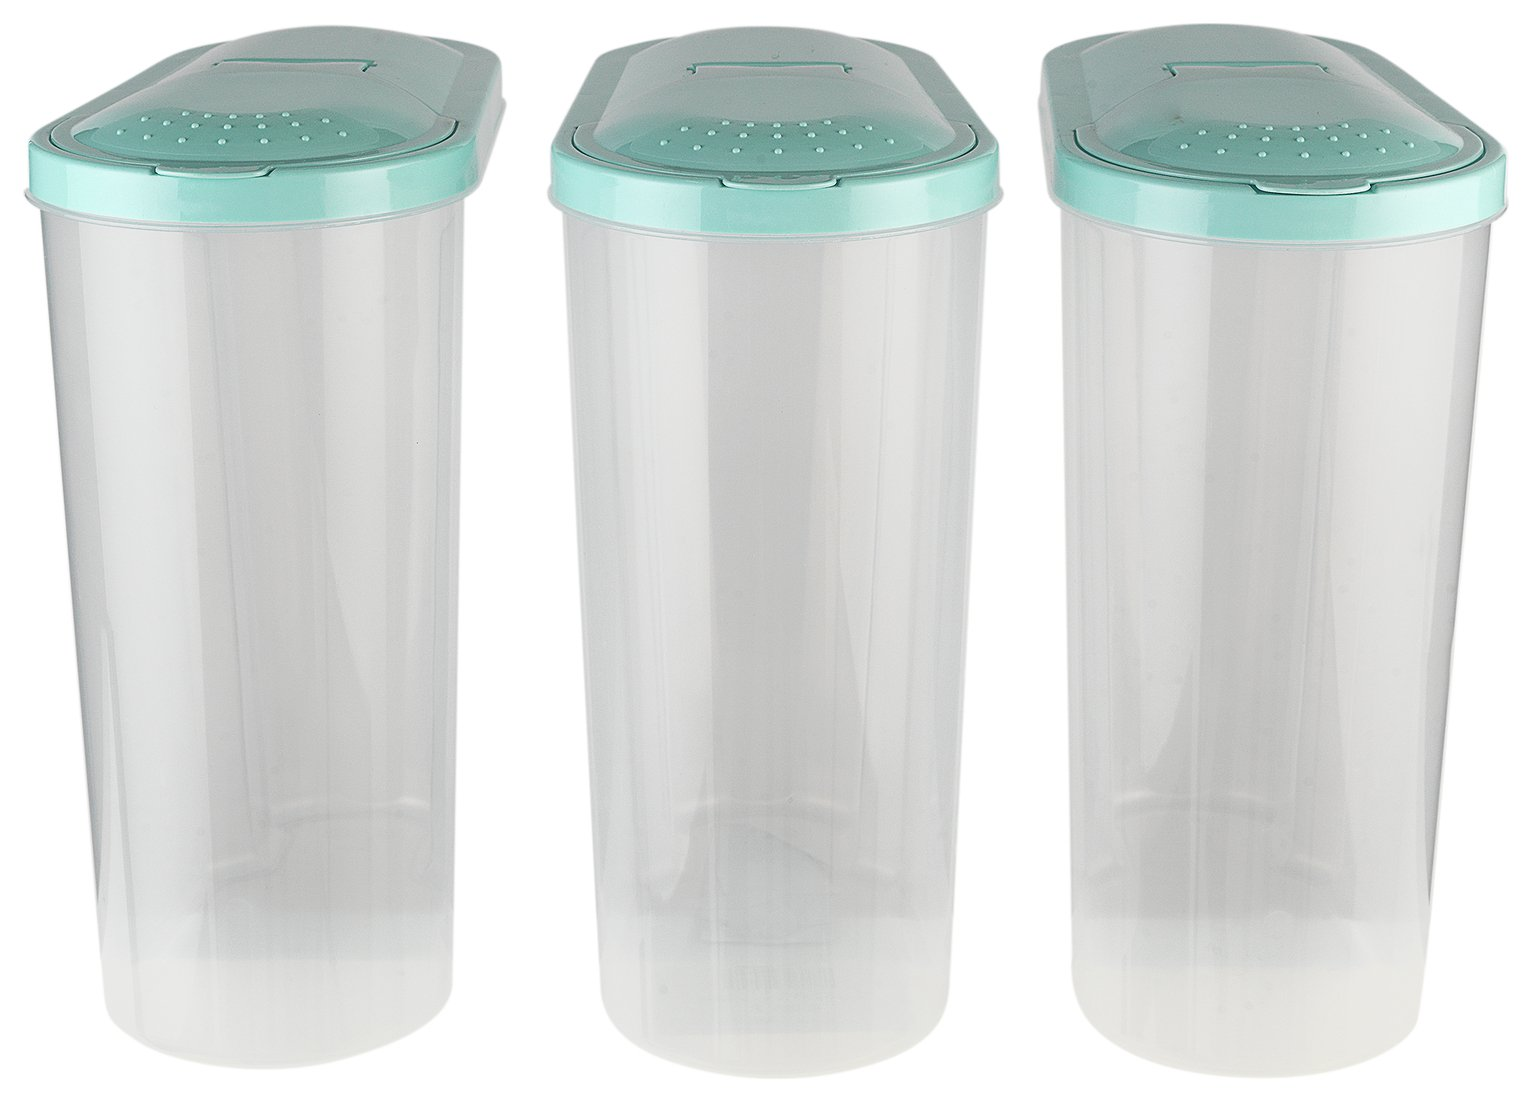 Argos Home 5 Litre Cereal Dispenser - Set of 3